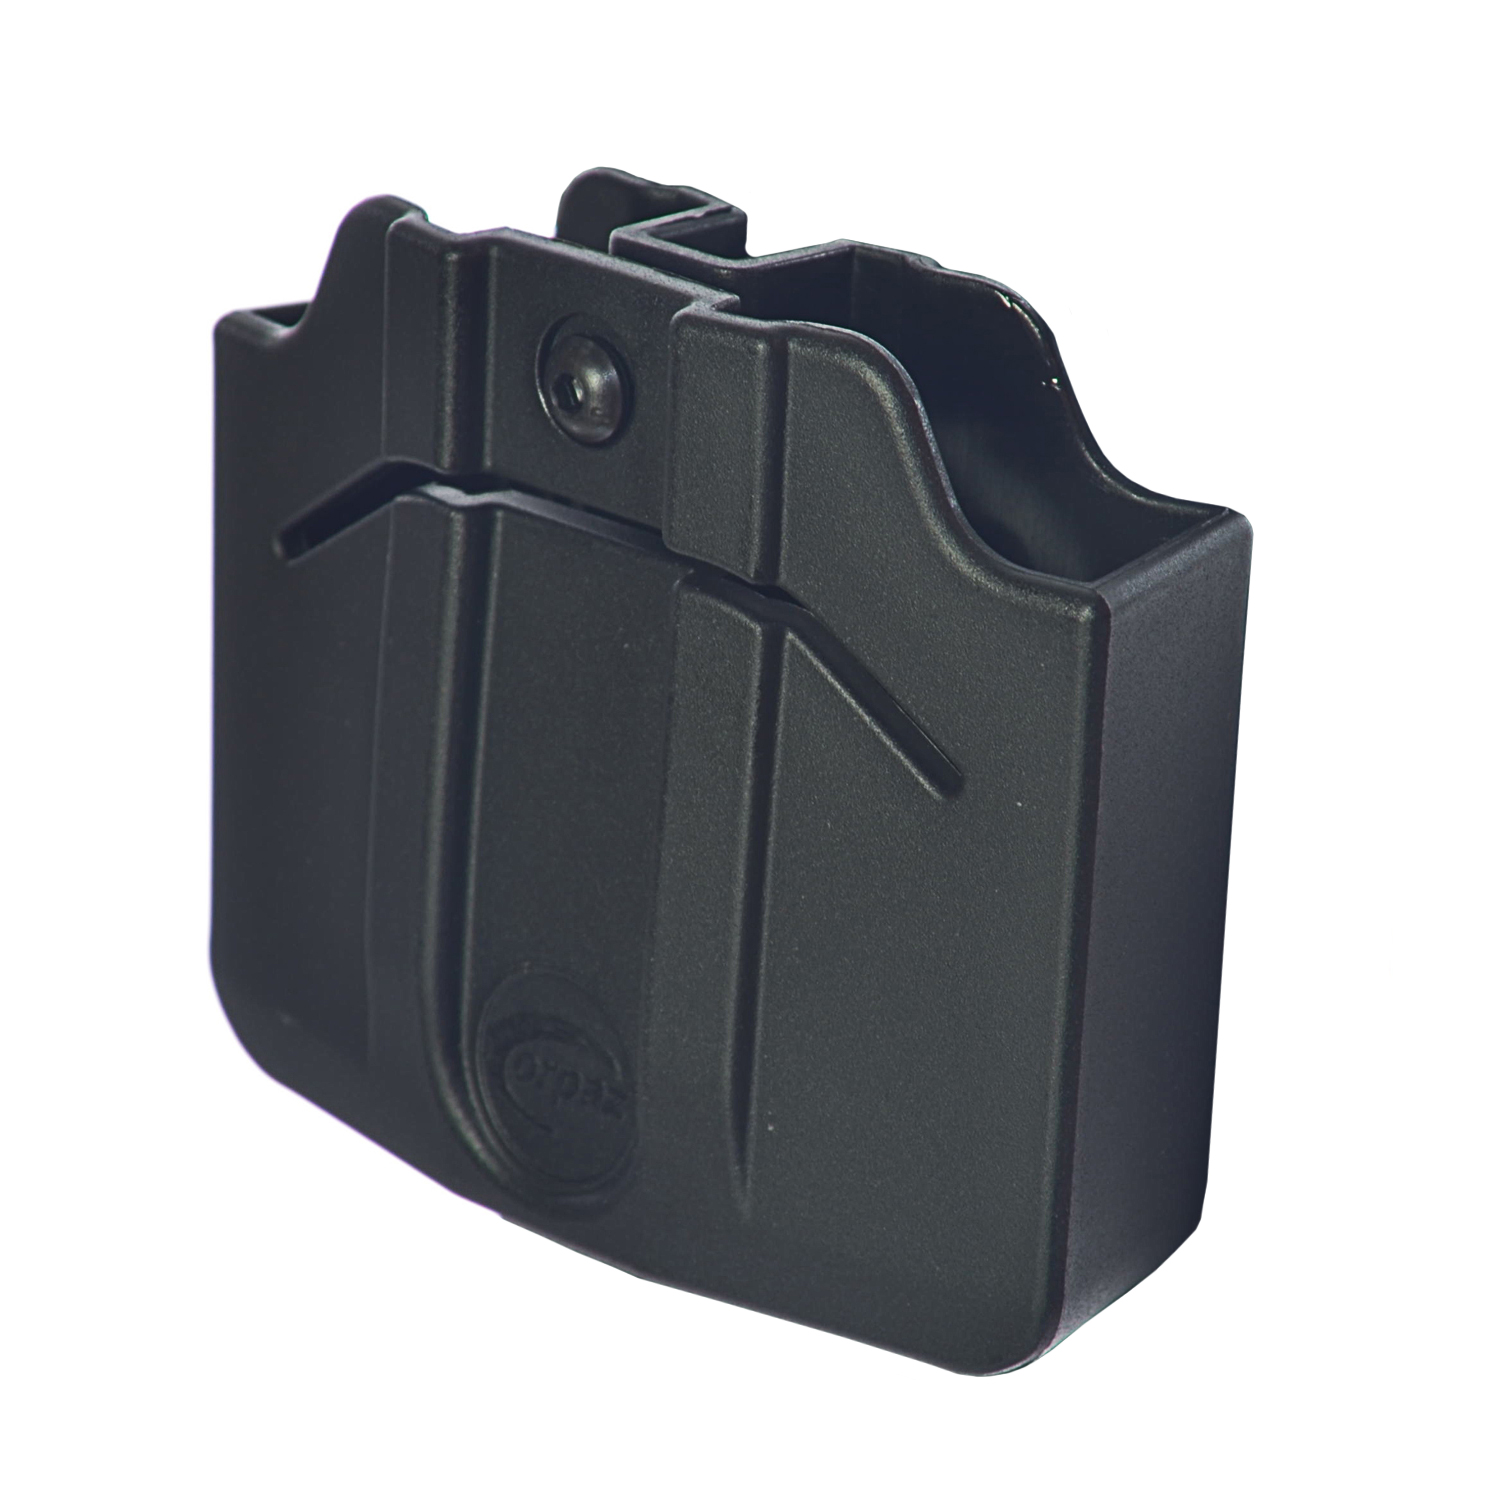 Orpaz Magazine Belt Holster Holds Two Double Stack 9mm METAL Mags Adjustable for by Orpaz